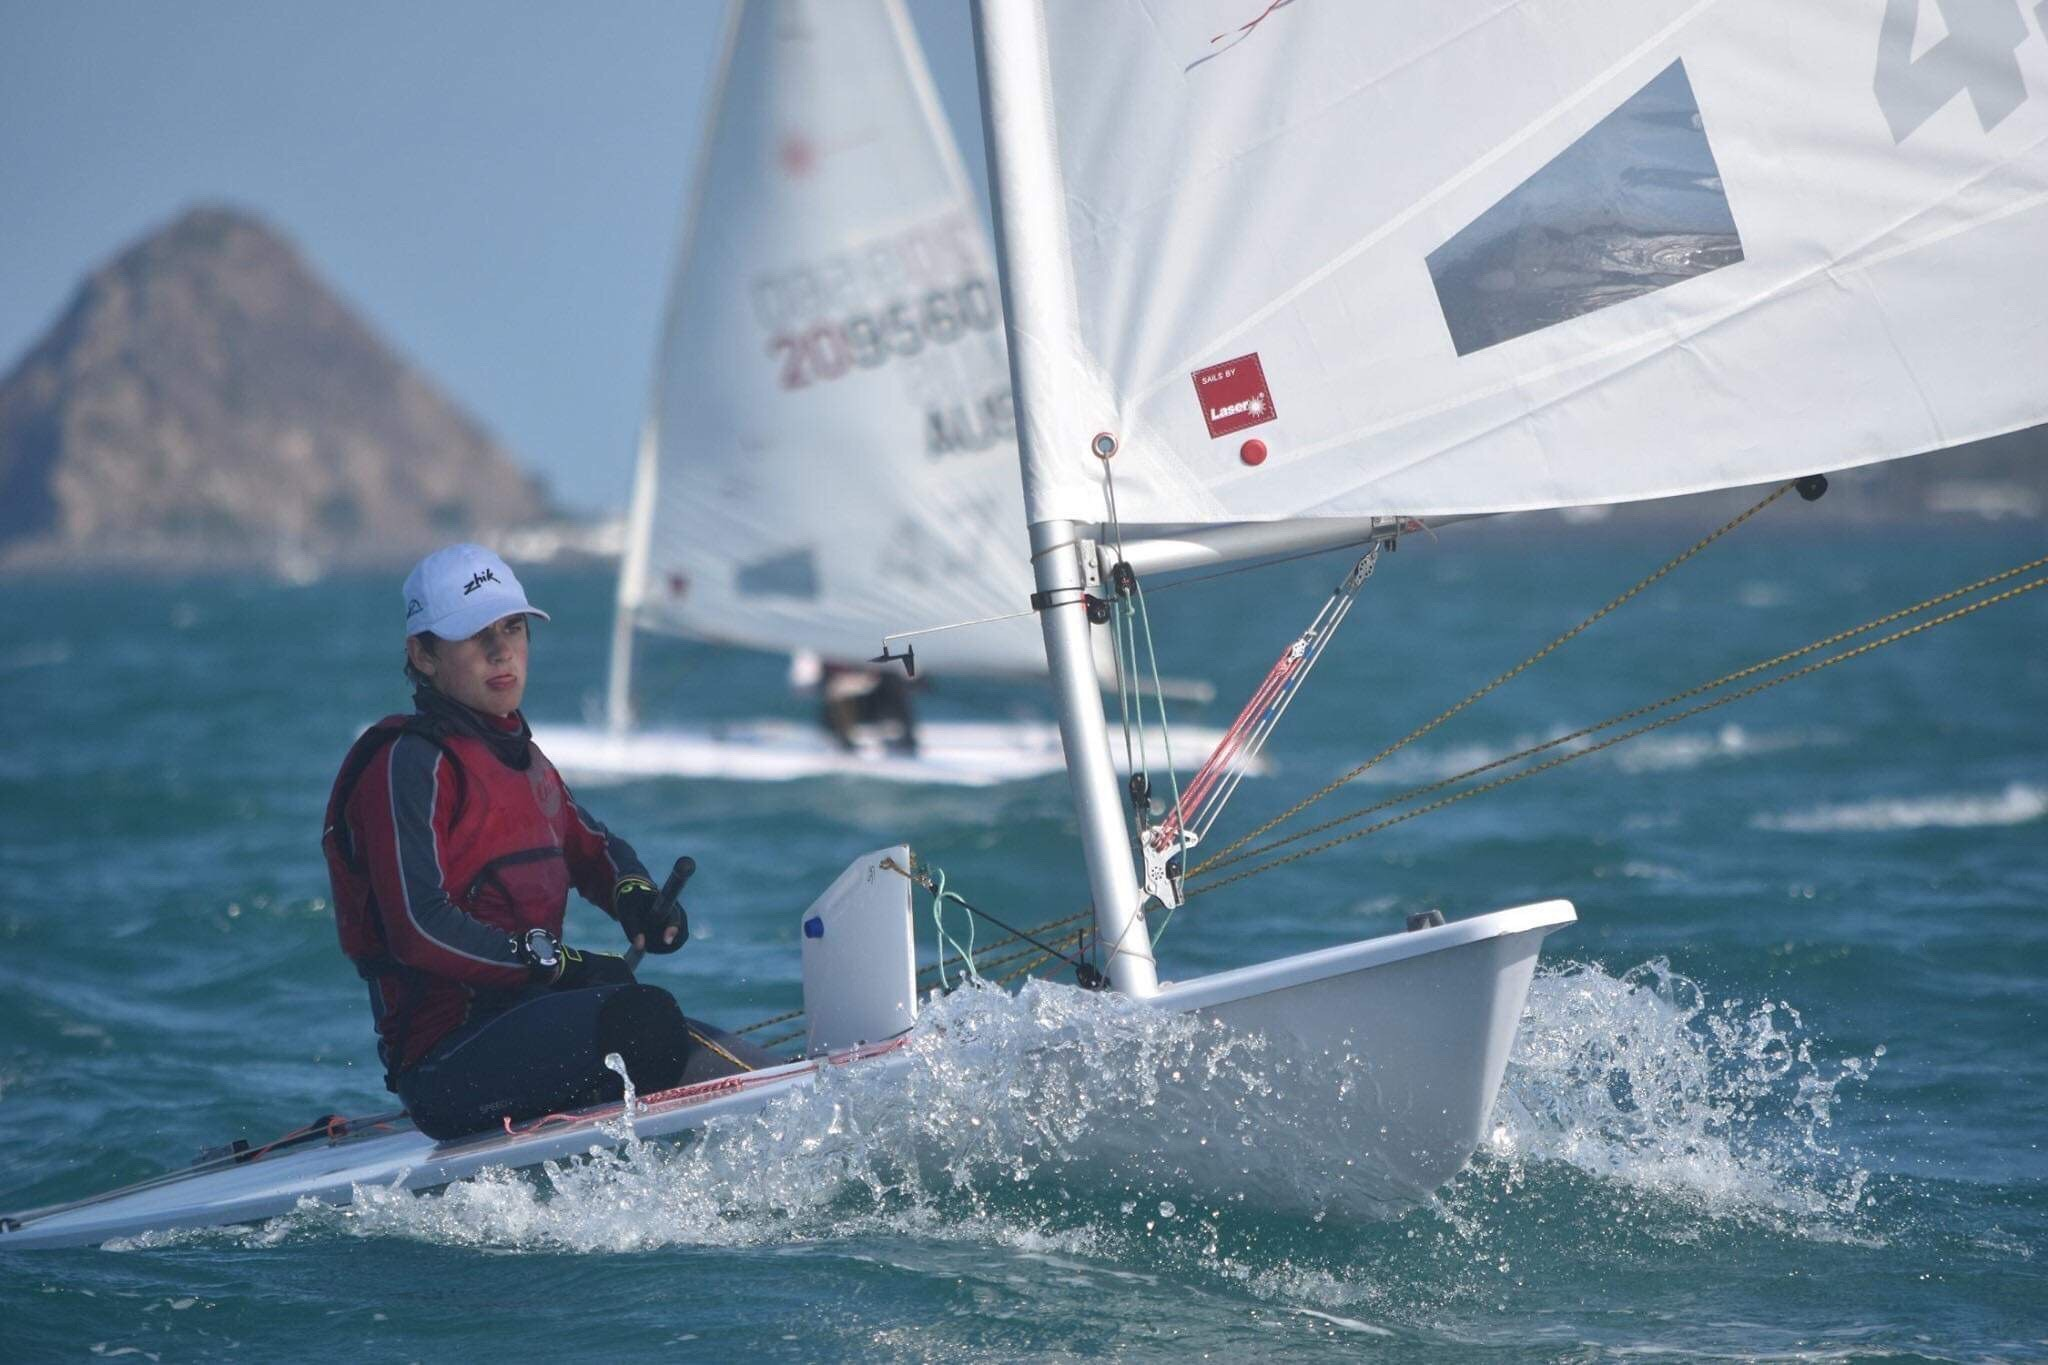 MBBC sailors kick off sailing season with fantastic results.